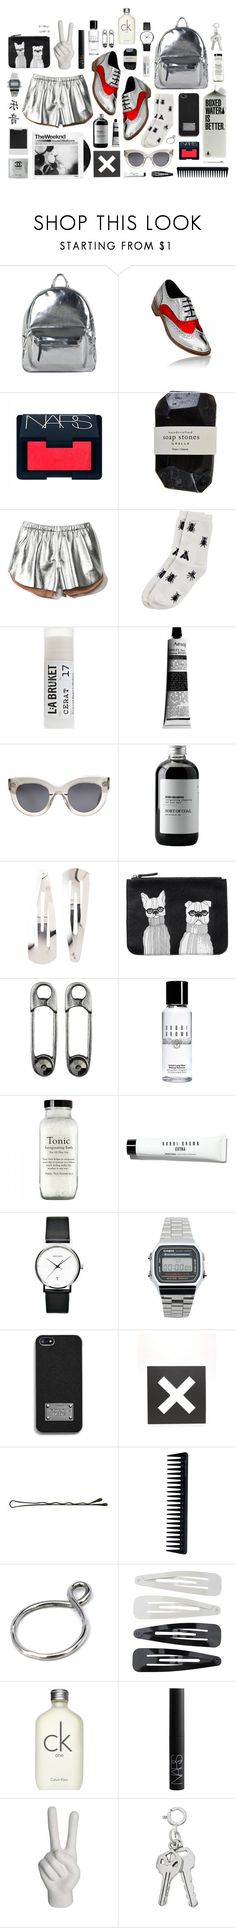 """""""LUKE GRANT MULLER x OUTBURSTS"""" by outbursts ❤ liked on Polyvore featuring Asya Malbershtein, NARS Cosmetics, Cassia, Clover Canyon, Monki, Toast, Aesop, CÉLINE, Sort of Coal and Adia Kibur"""